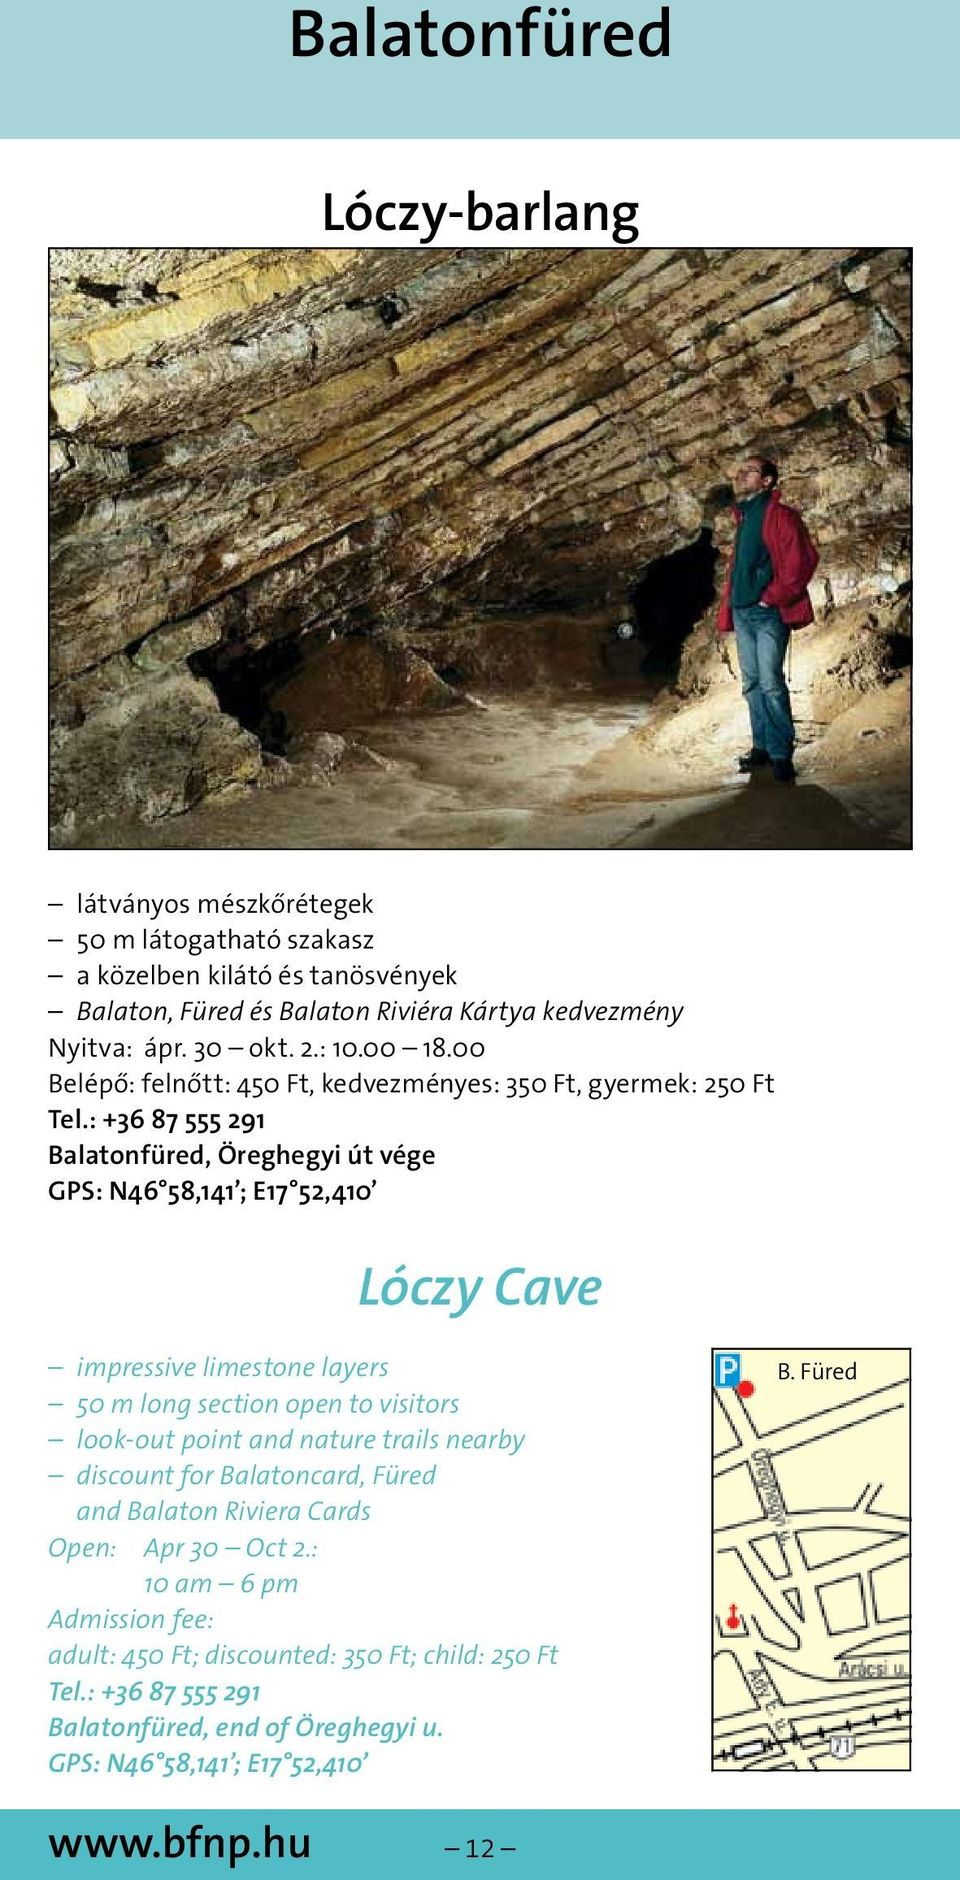 : +36 87 555 291 Balatonfüred, Öreghegyi út vége GPS: N46 58,141 ; E17 52,410 Lóczy Cave impressive limestone layers 50 m long section open to visitors look-out point and nature